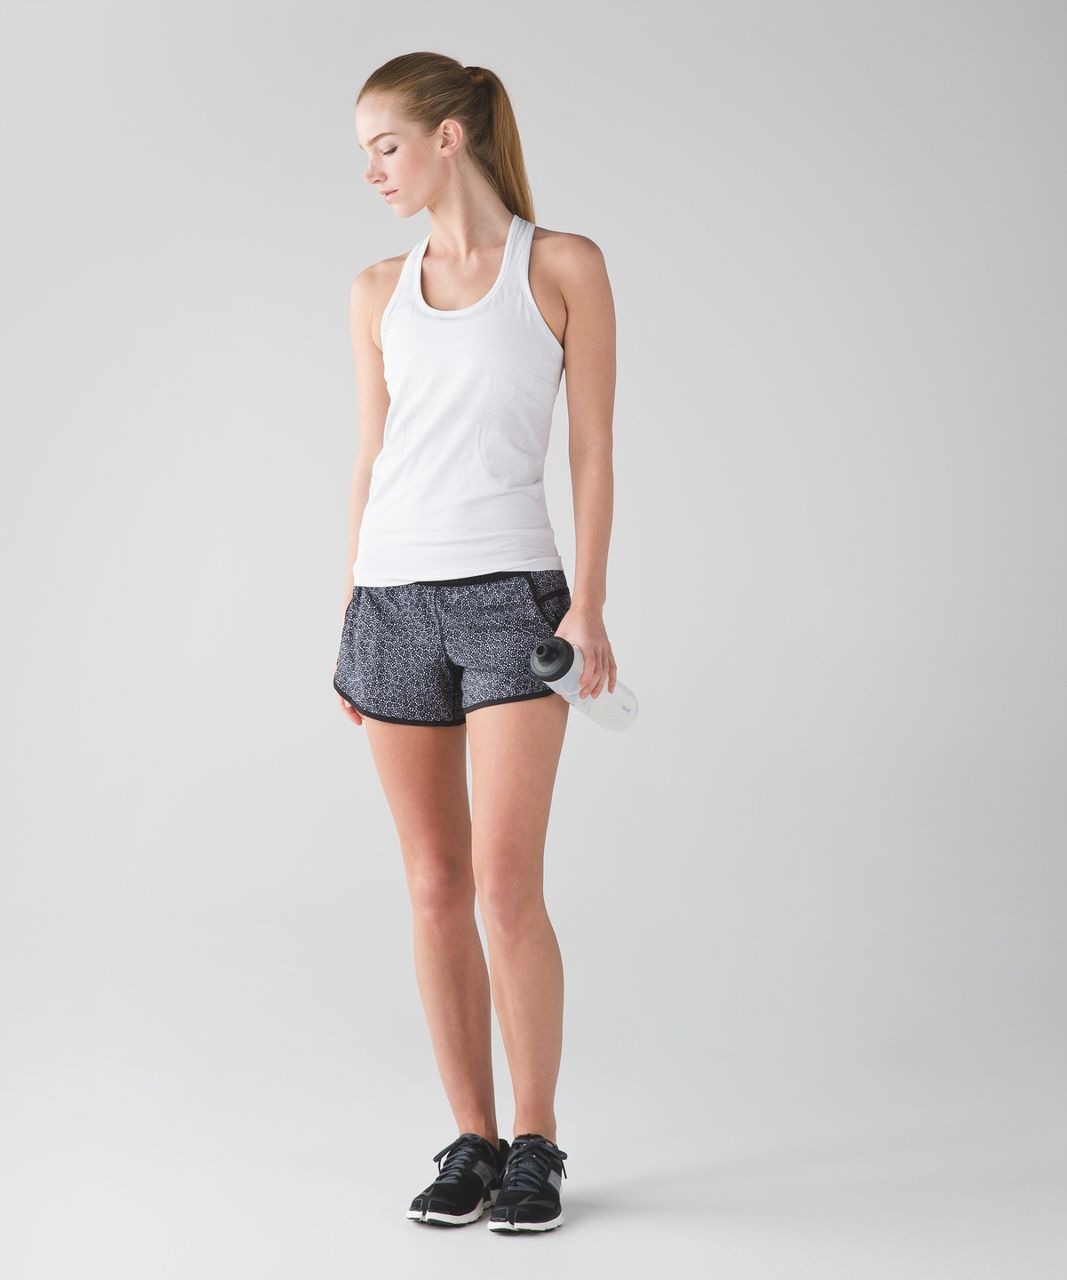 Lululemon Tracker Short IV - Freckle Flower Black White / Black